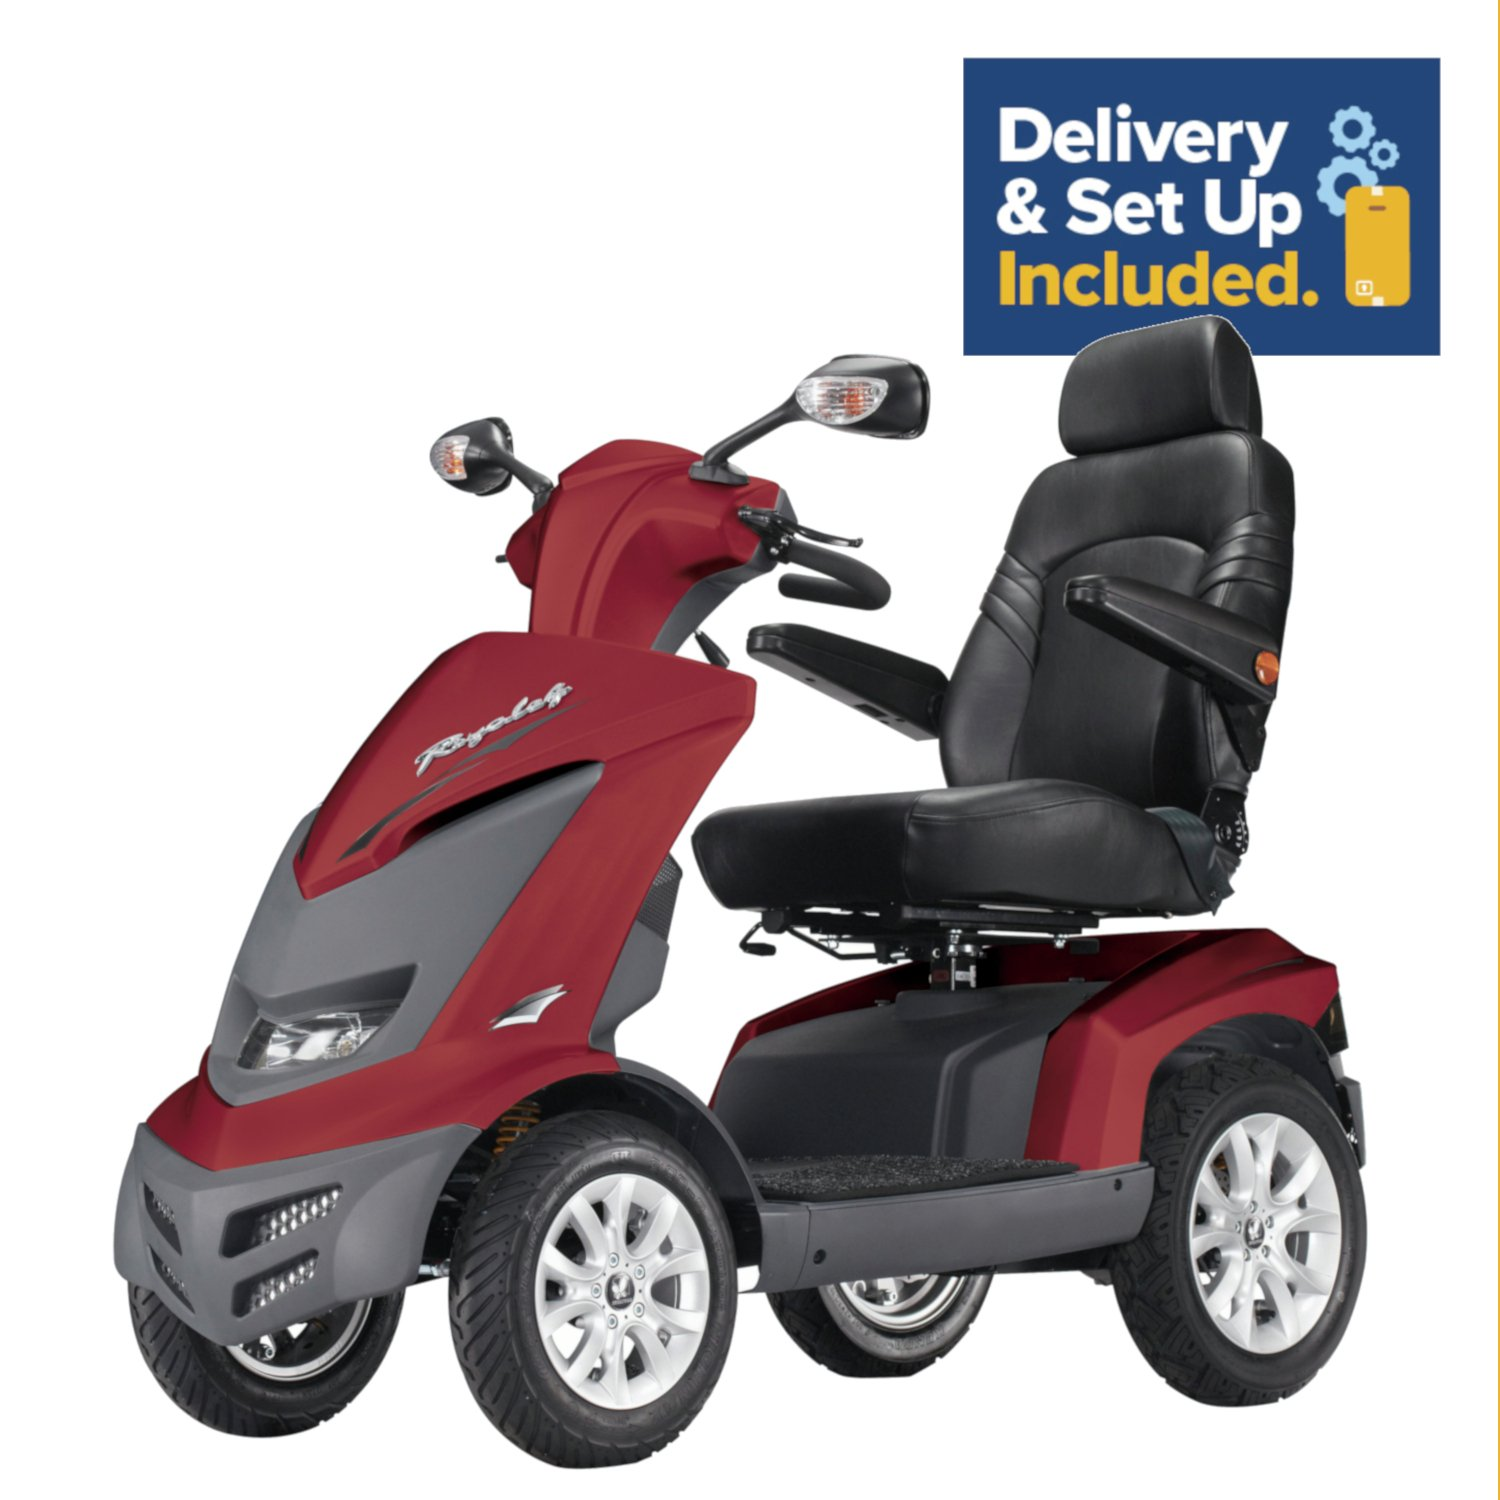 Drive DeVilbiss Healthcare Royale Mobility Scooter Class 3 - Red.